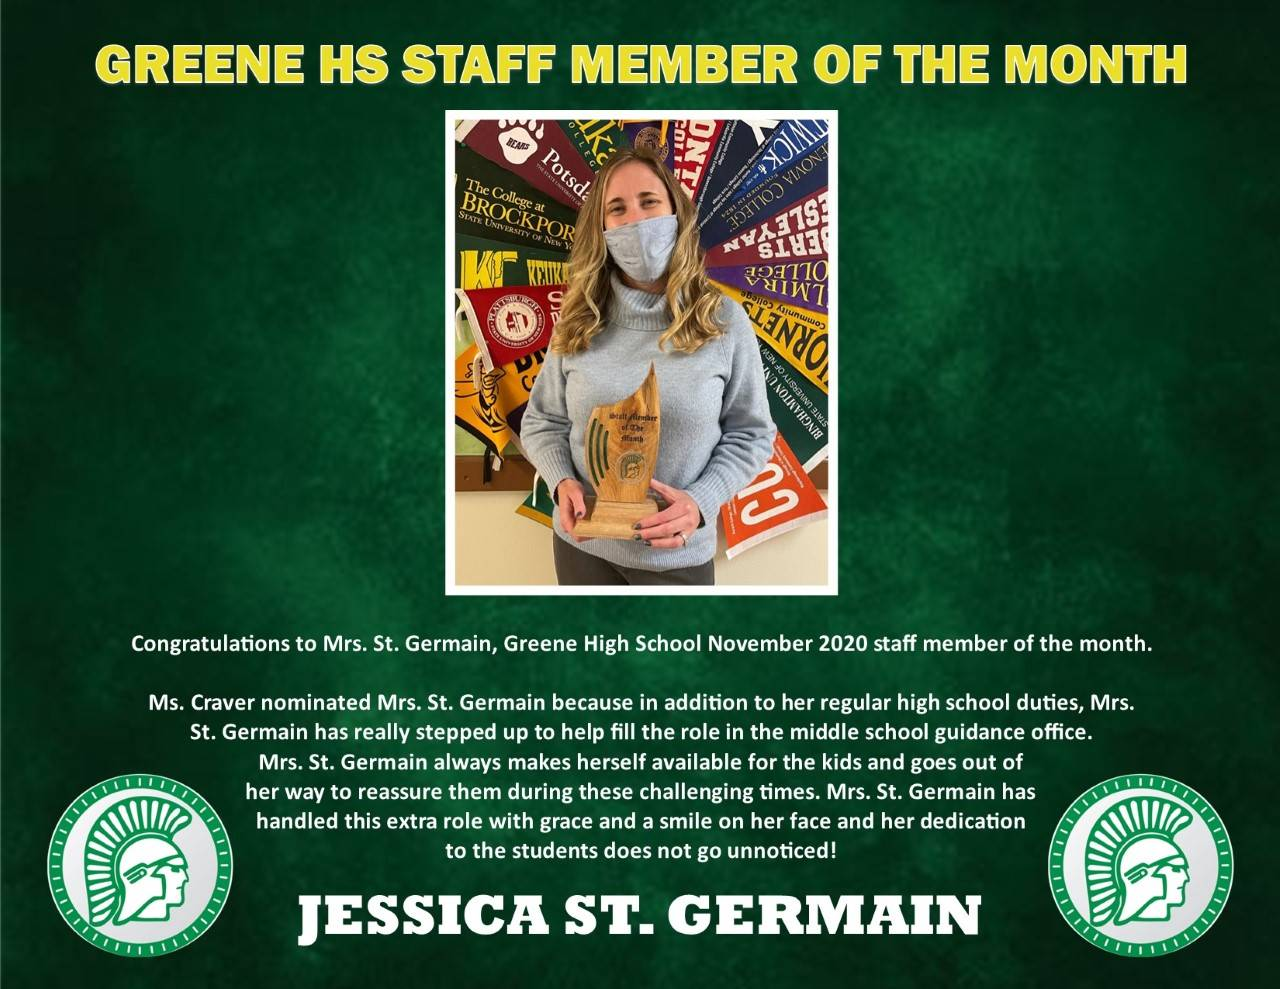 Photo of Jess St. Germain Greene HS Staff Member of the Month for Nov.